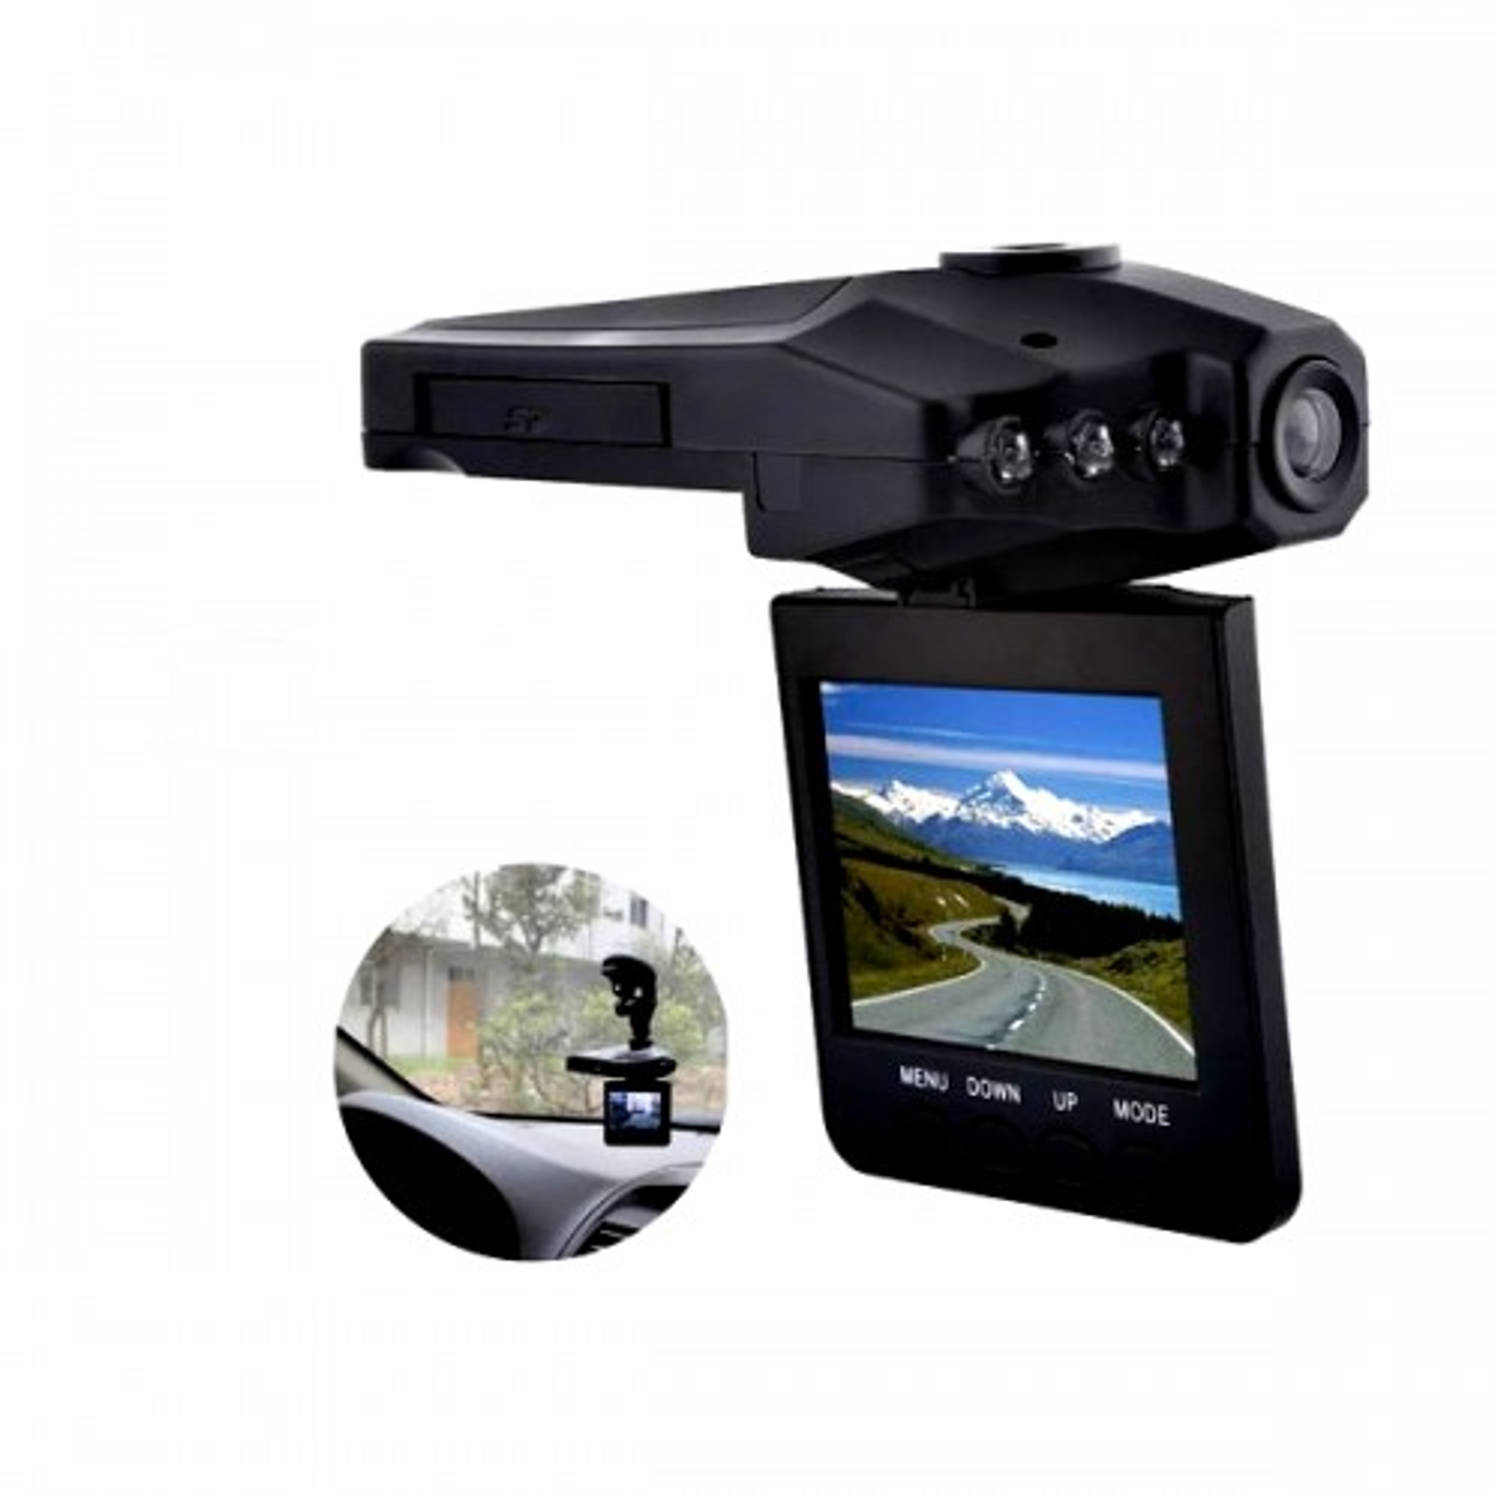 PO-188 Digitale Autovideo Camera - Dashcam - HD Ready - 2,5inch LCD - zwart